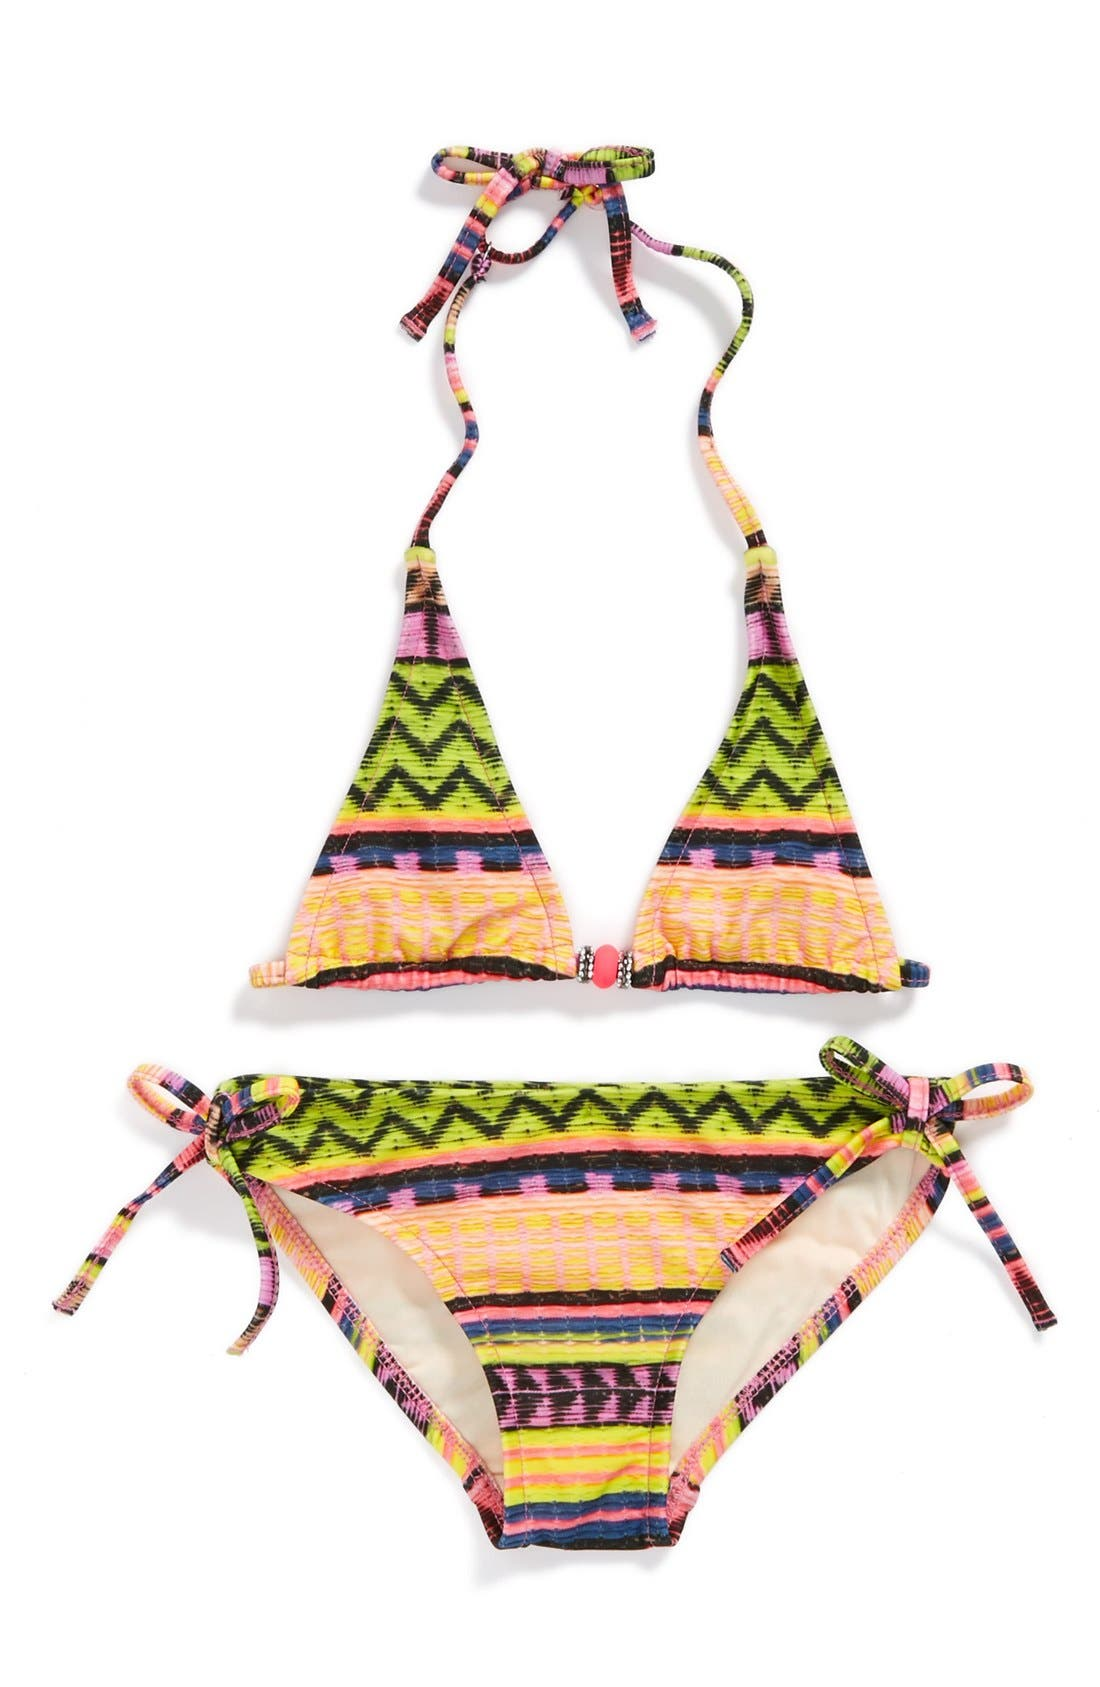 Main Image - Milly Minis 'Fiji' Two-Piece Swimsuit (Big Girls)